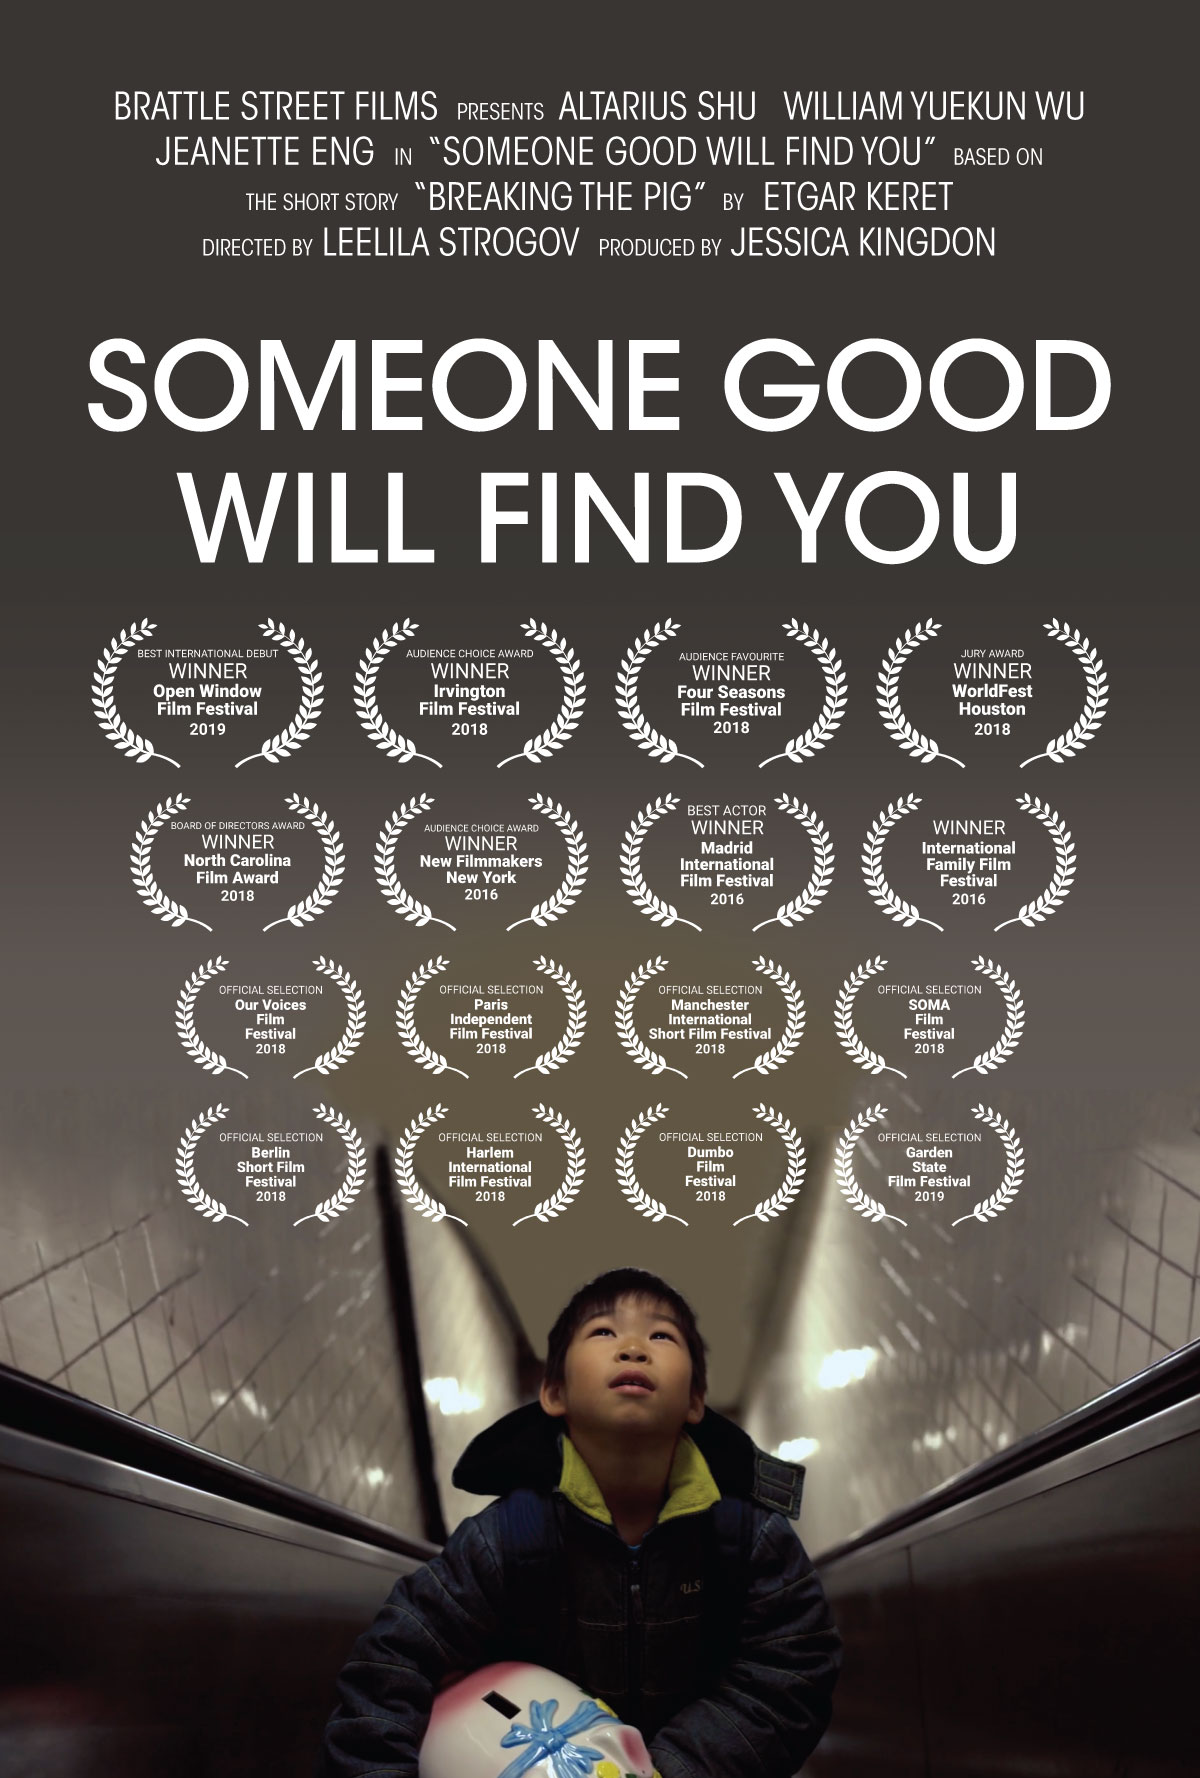 Movie Poster - Someone Good Will Find You